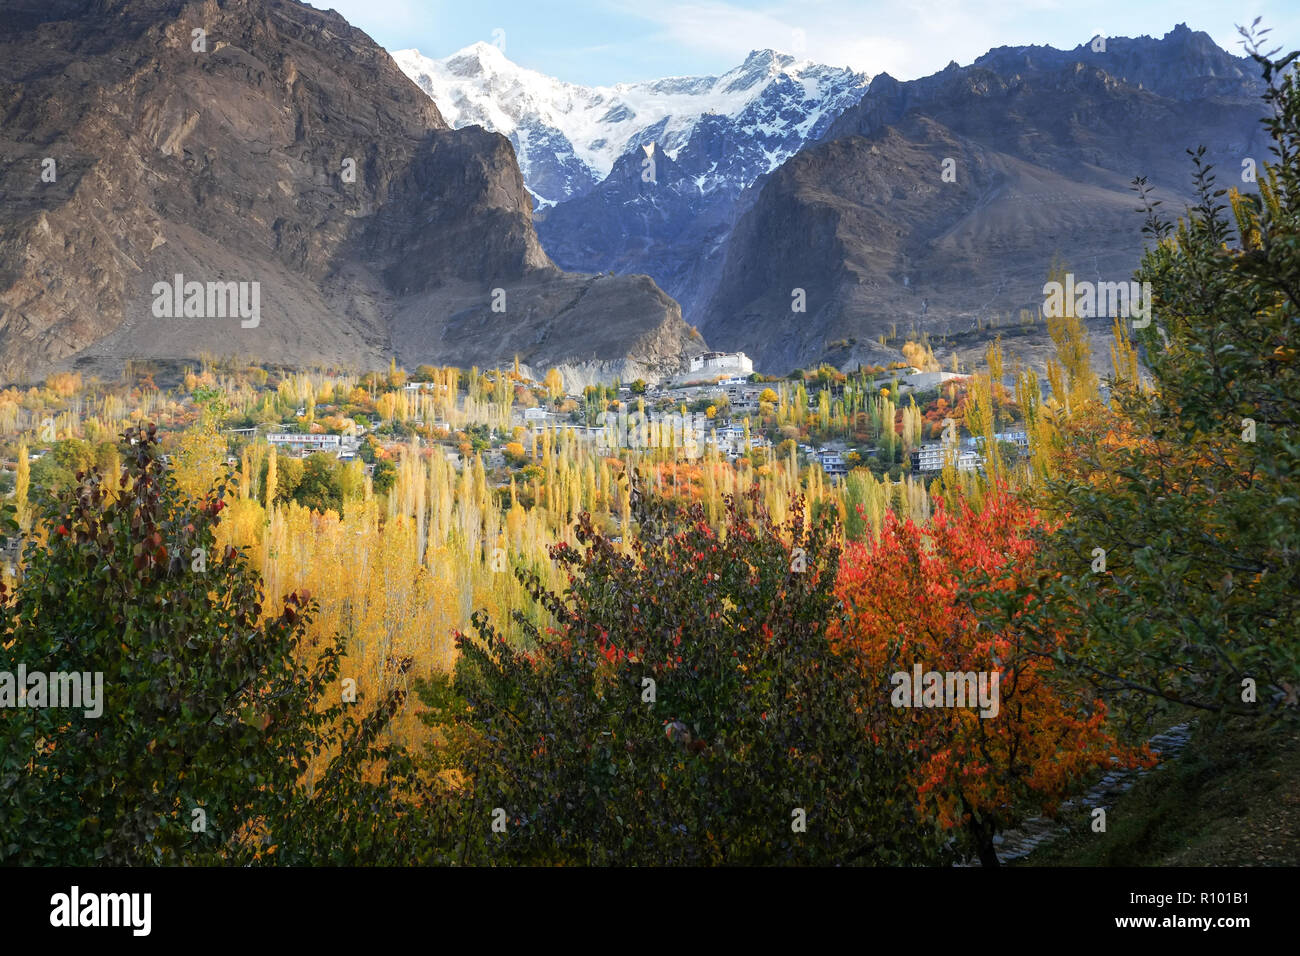 Autumn scene in Karimabad with mountains in the background. Hunza valley, Pakistan. - Stock Image